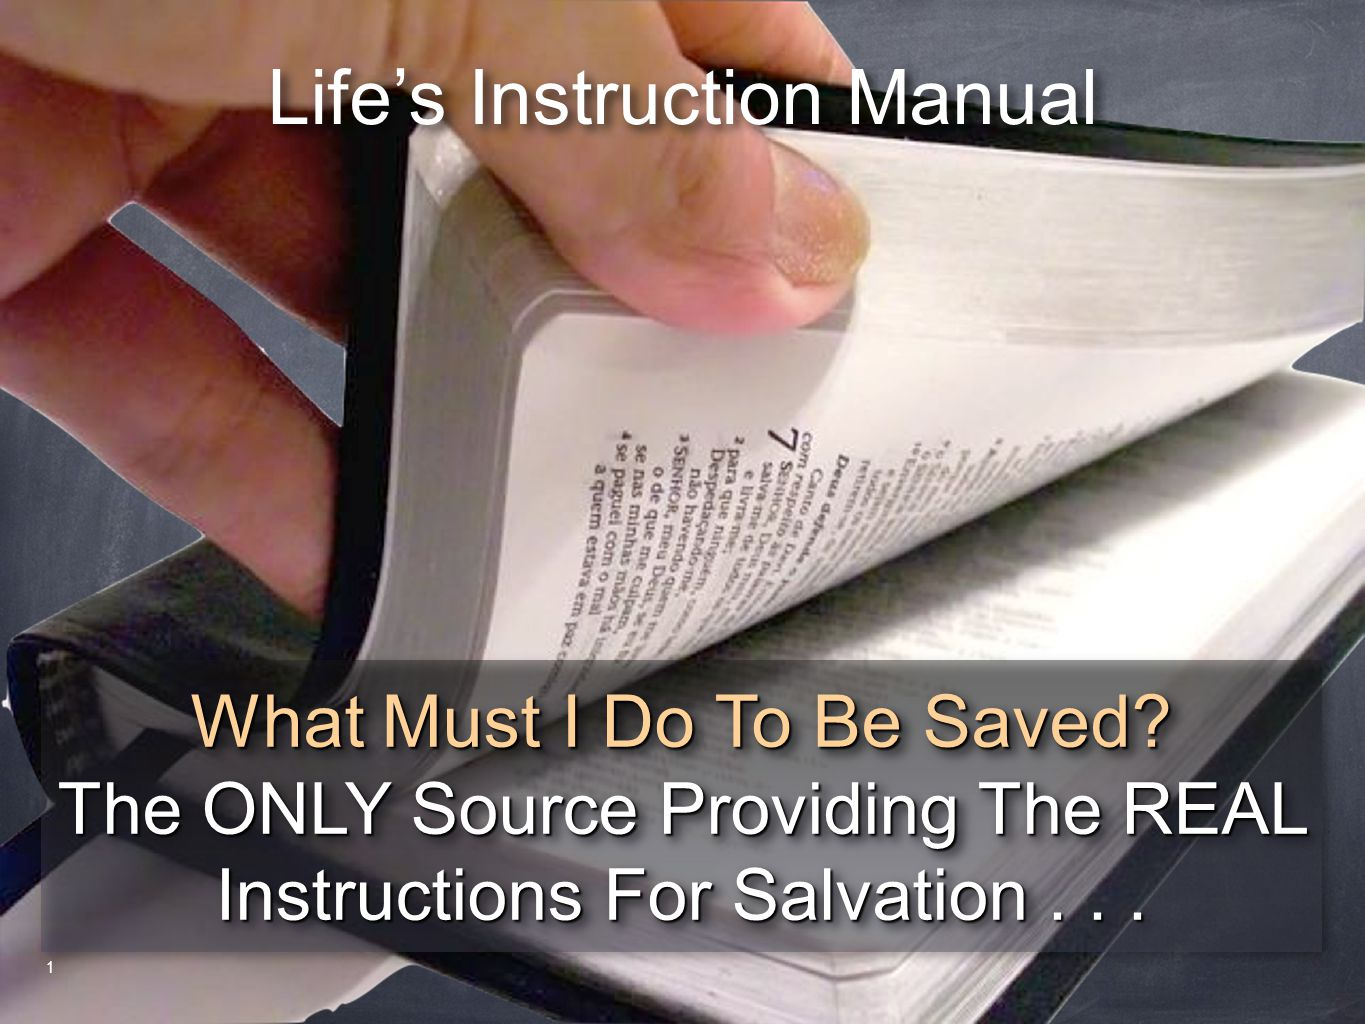 Life's Instruction Manual What Must I Do To Be Saved? The ONLY Source Providing The REAL Instructions For Salvation... What Must I Do To Be Saved? The